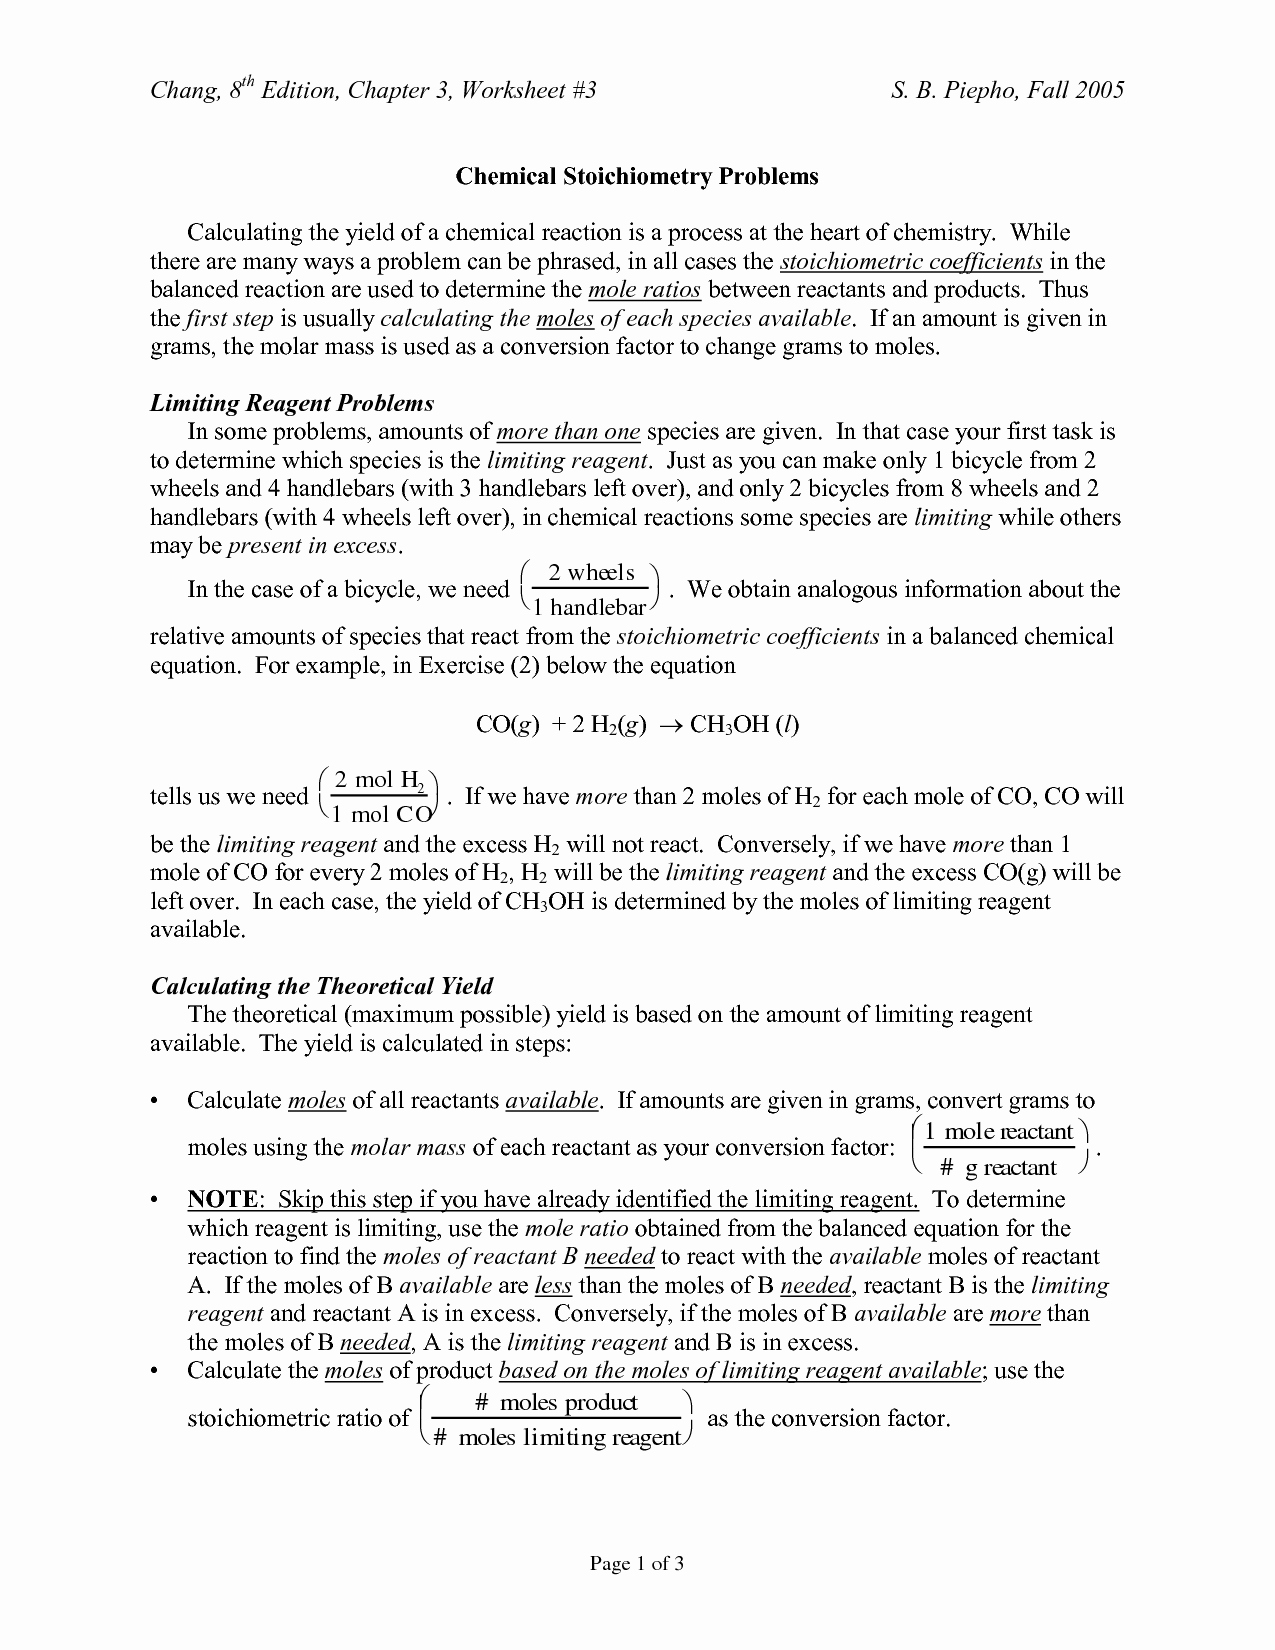 Limiting Reactant Worksheet Answers New 14 Best Of Mole Conversion Worksheet Chemistry